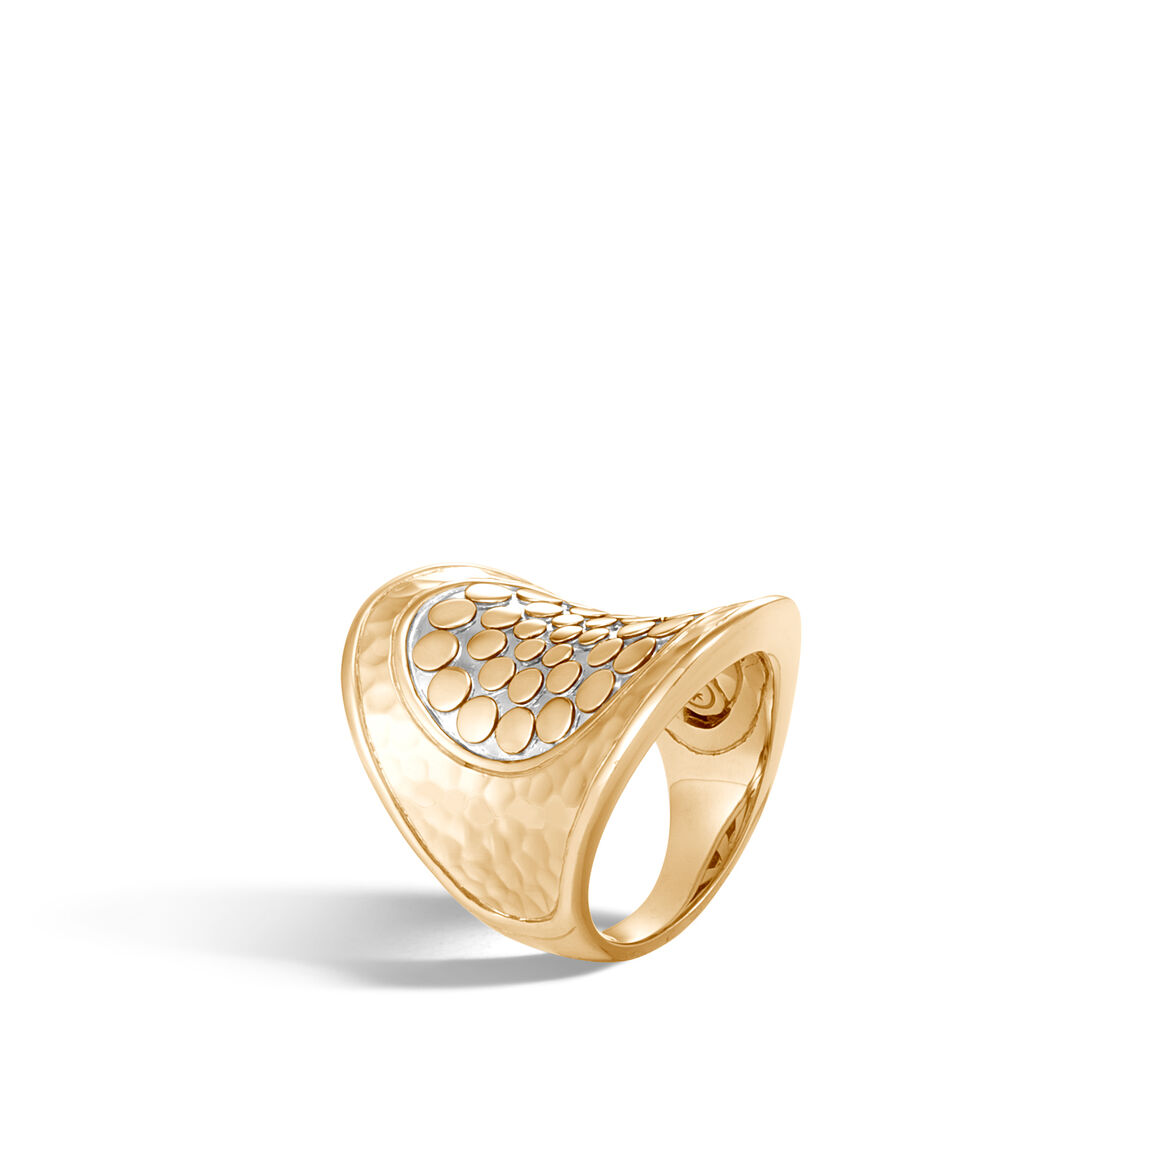 Dot Saddle Ring in Hammered 18K Gold with Diamonds